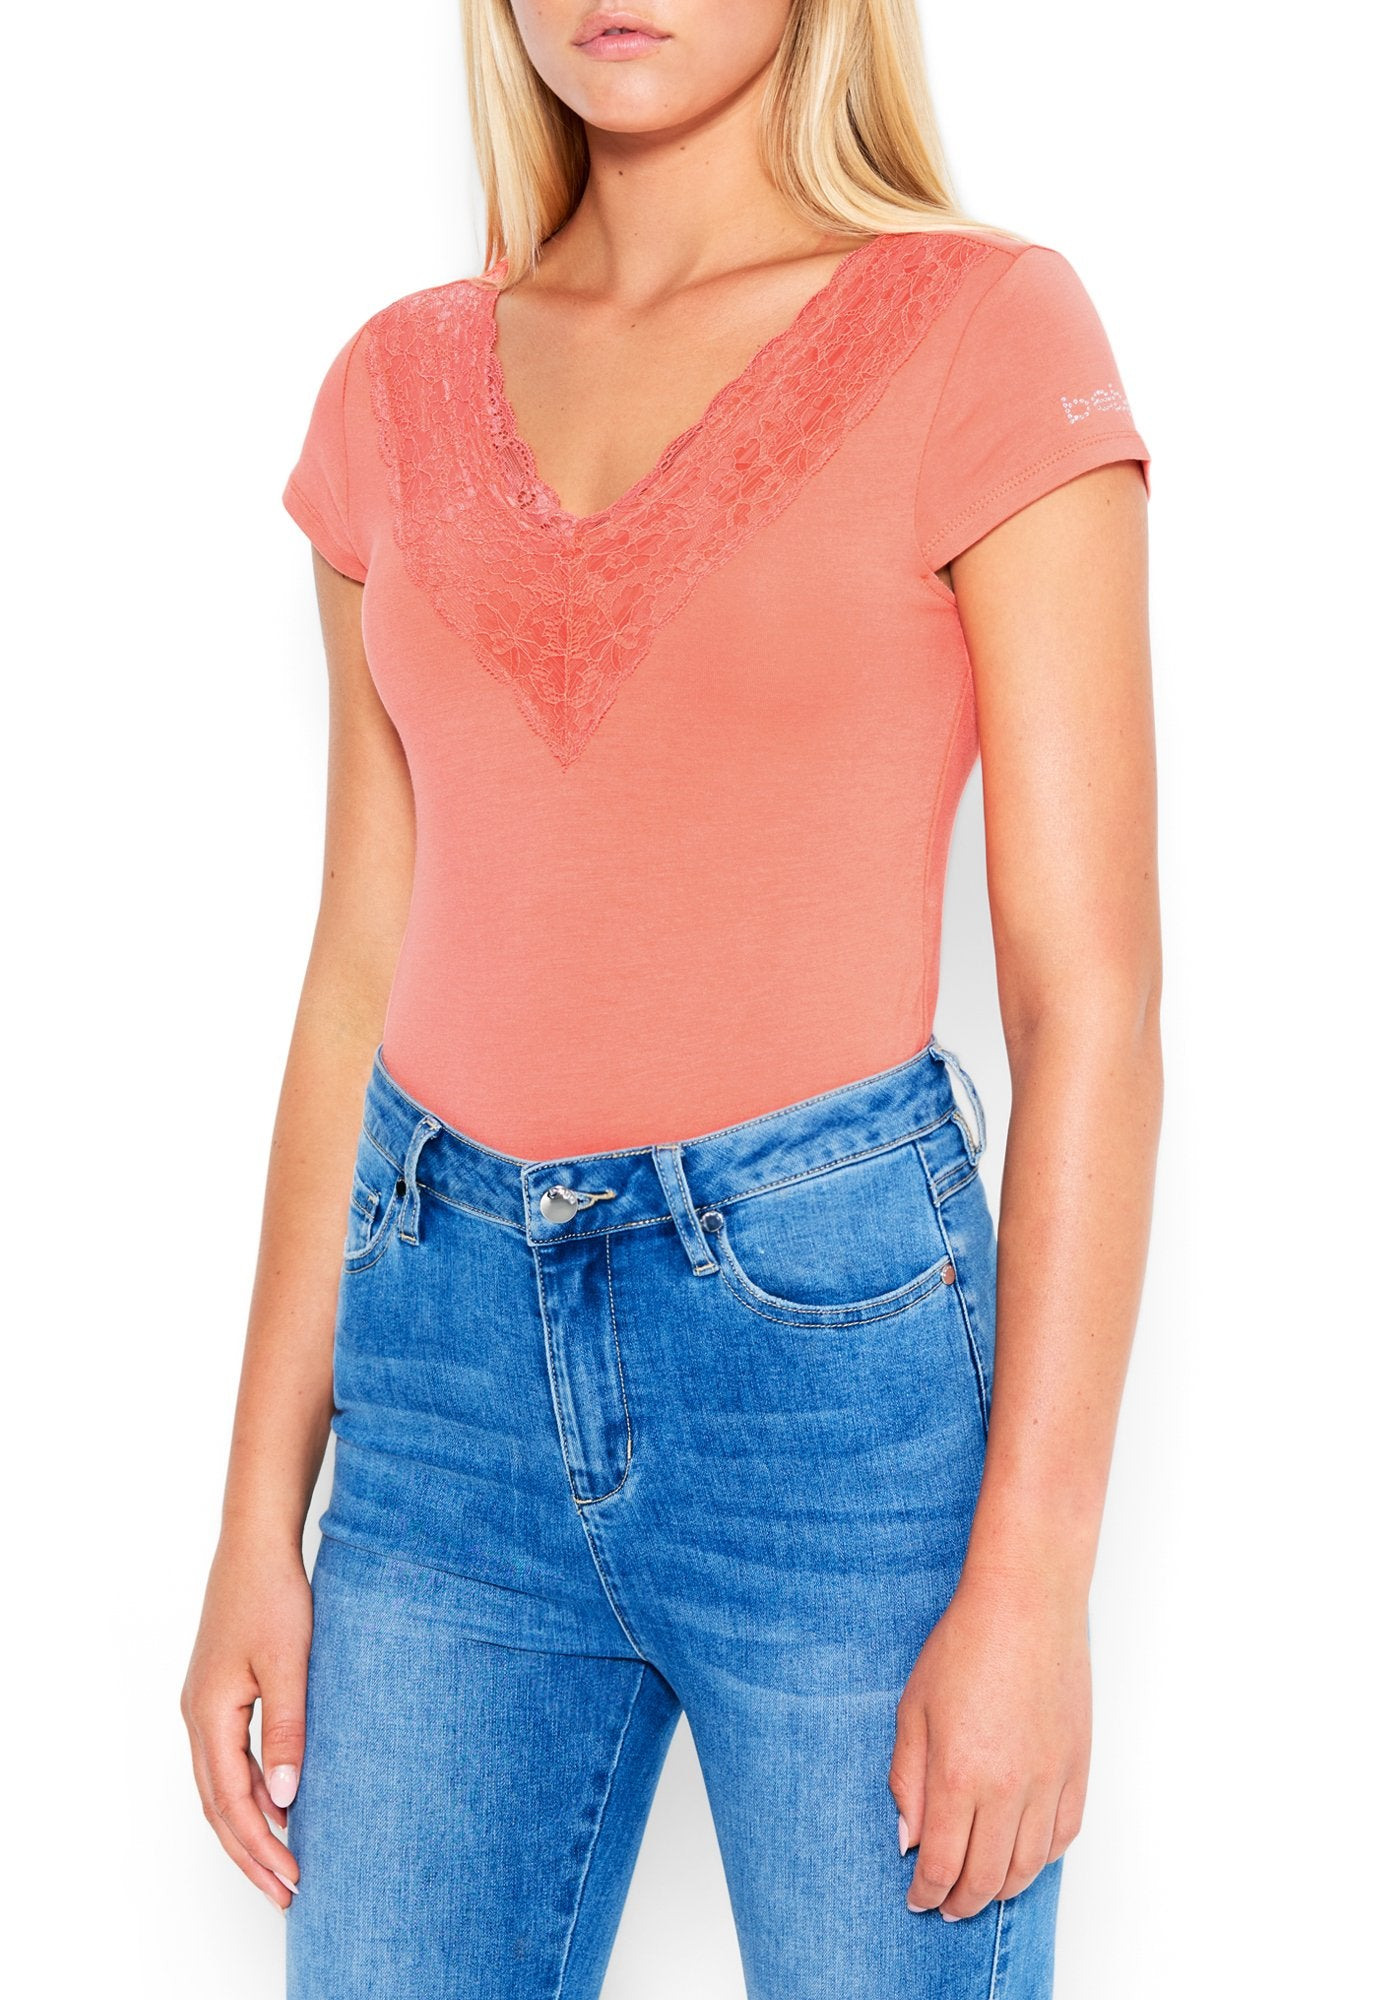 Image of Women's Bebe Logo Lace Plunge Bodysuit, Size XL in PEACH ECHO Spandex